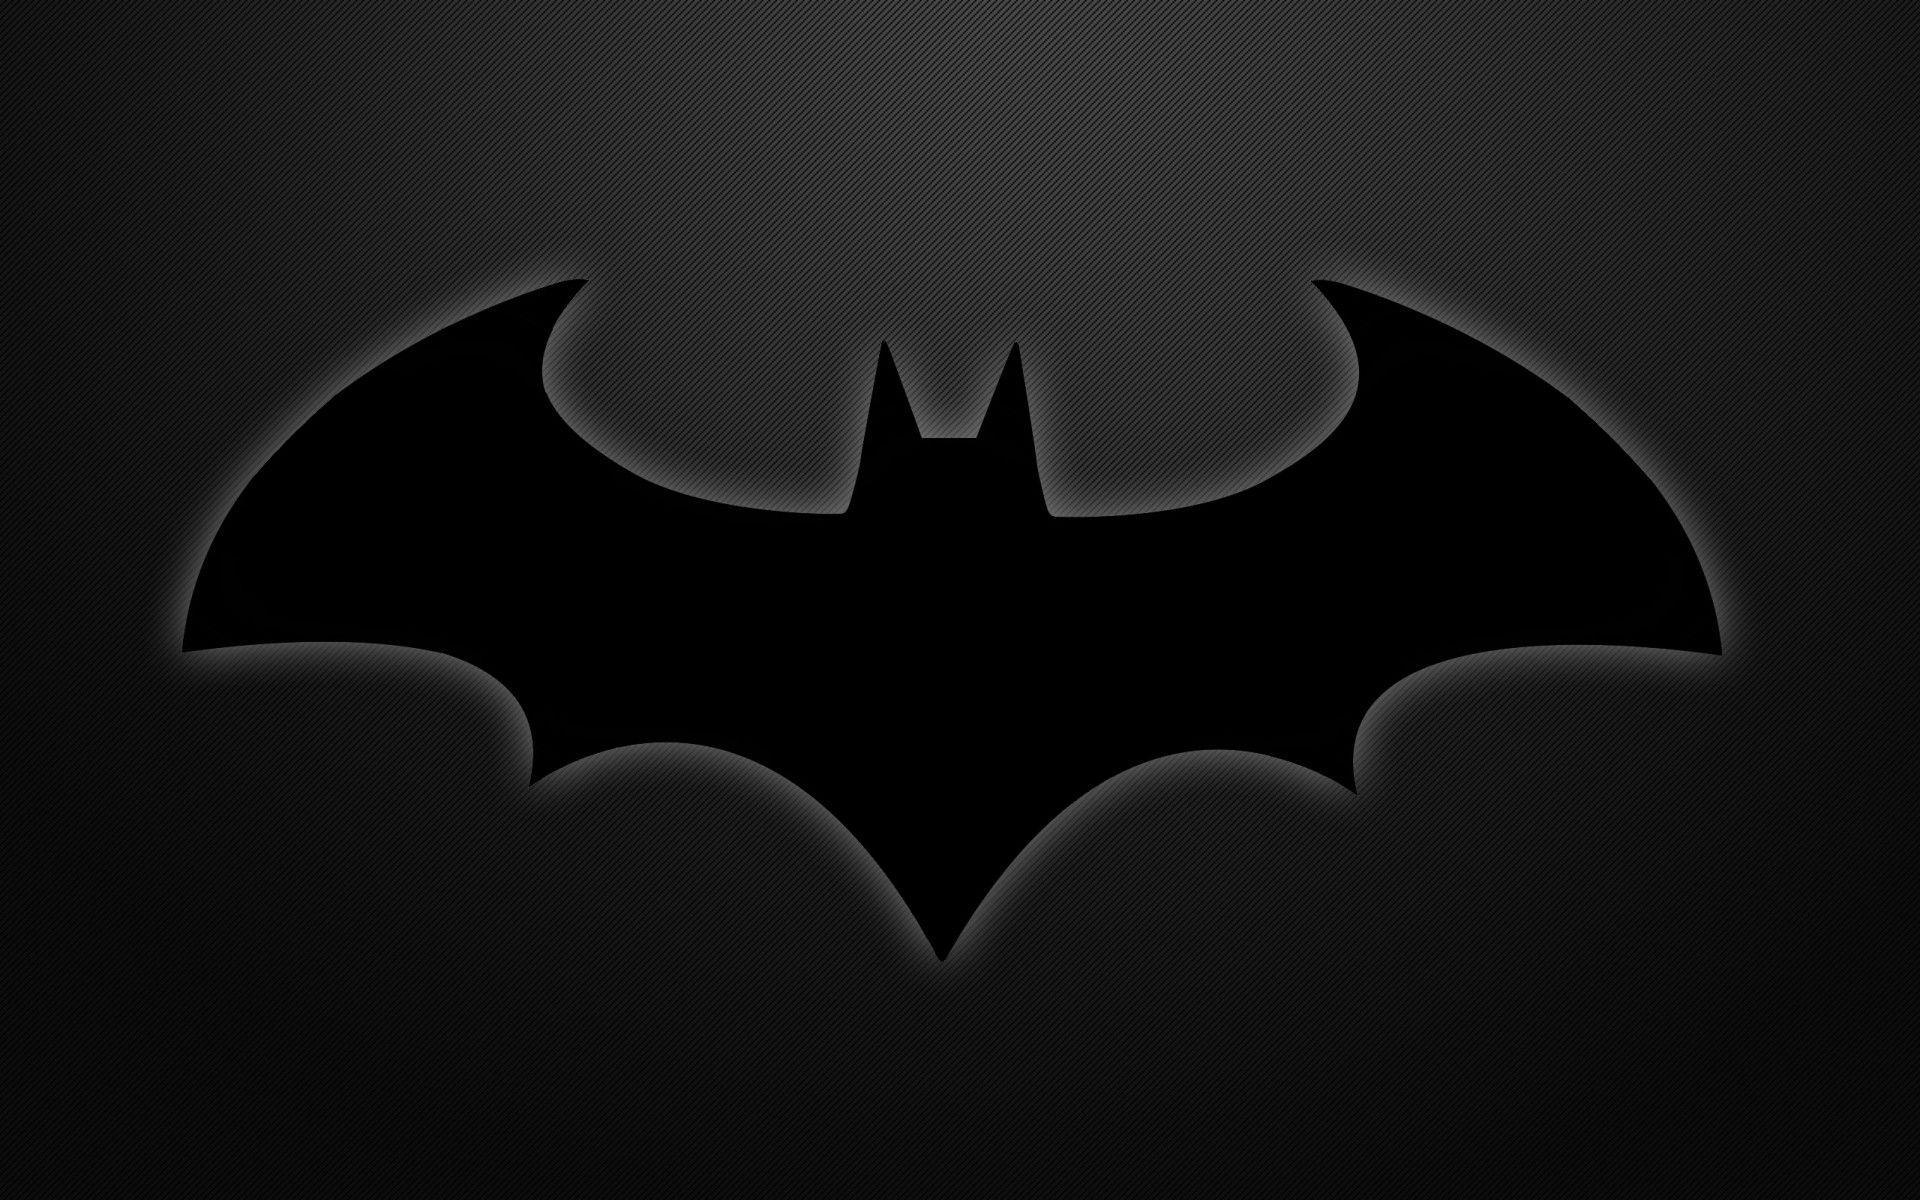 Batman symbol wallpaper high quality resolutions wallpapers and